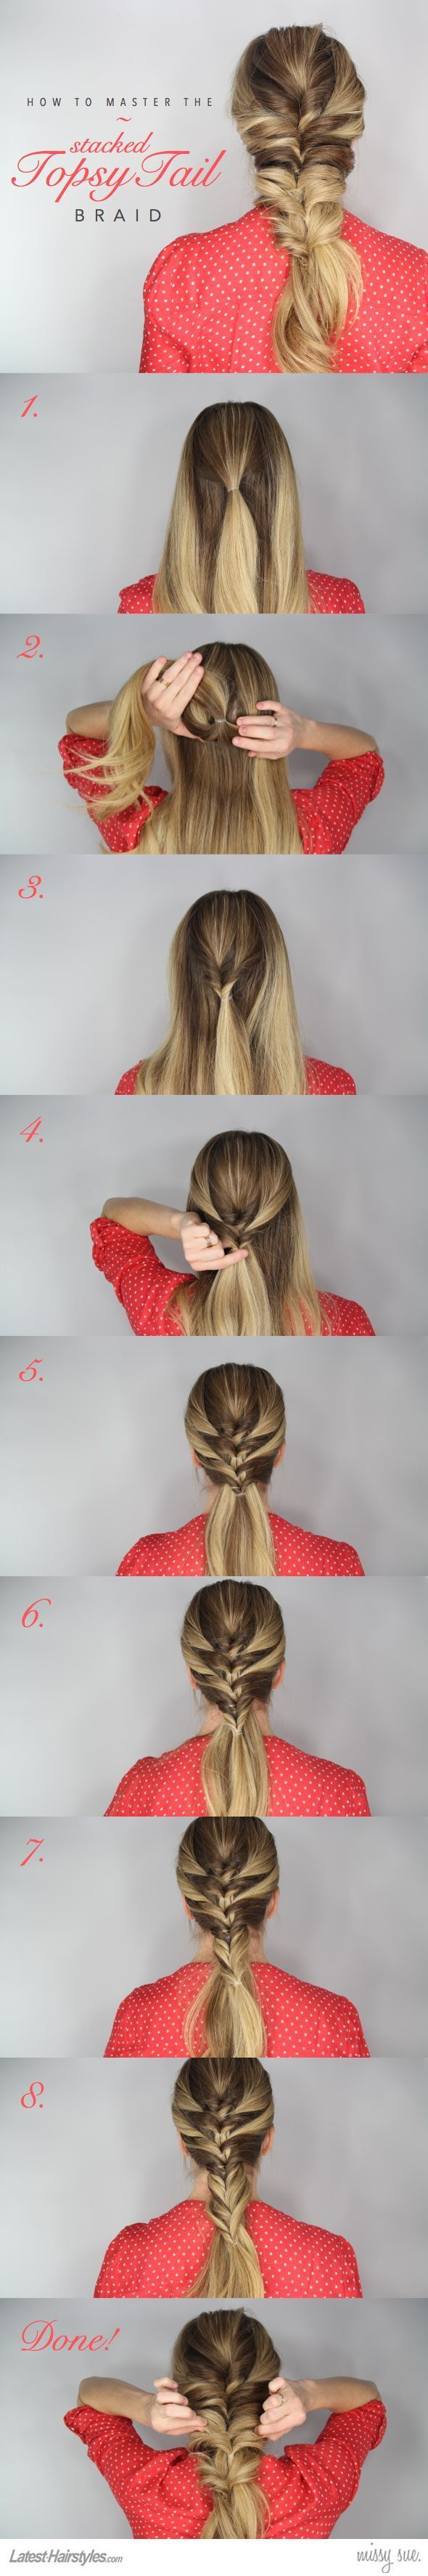 Letus master this stacked topsy tail braid tutorial tail braids